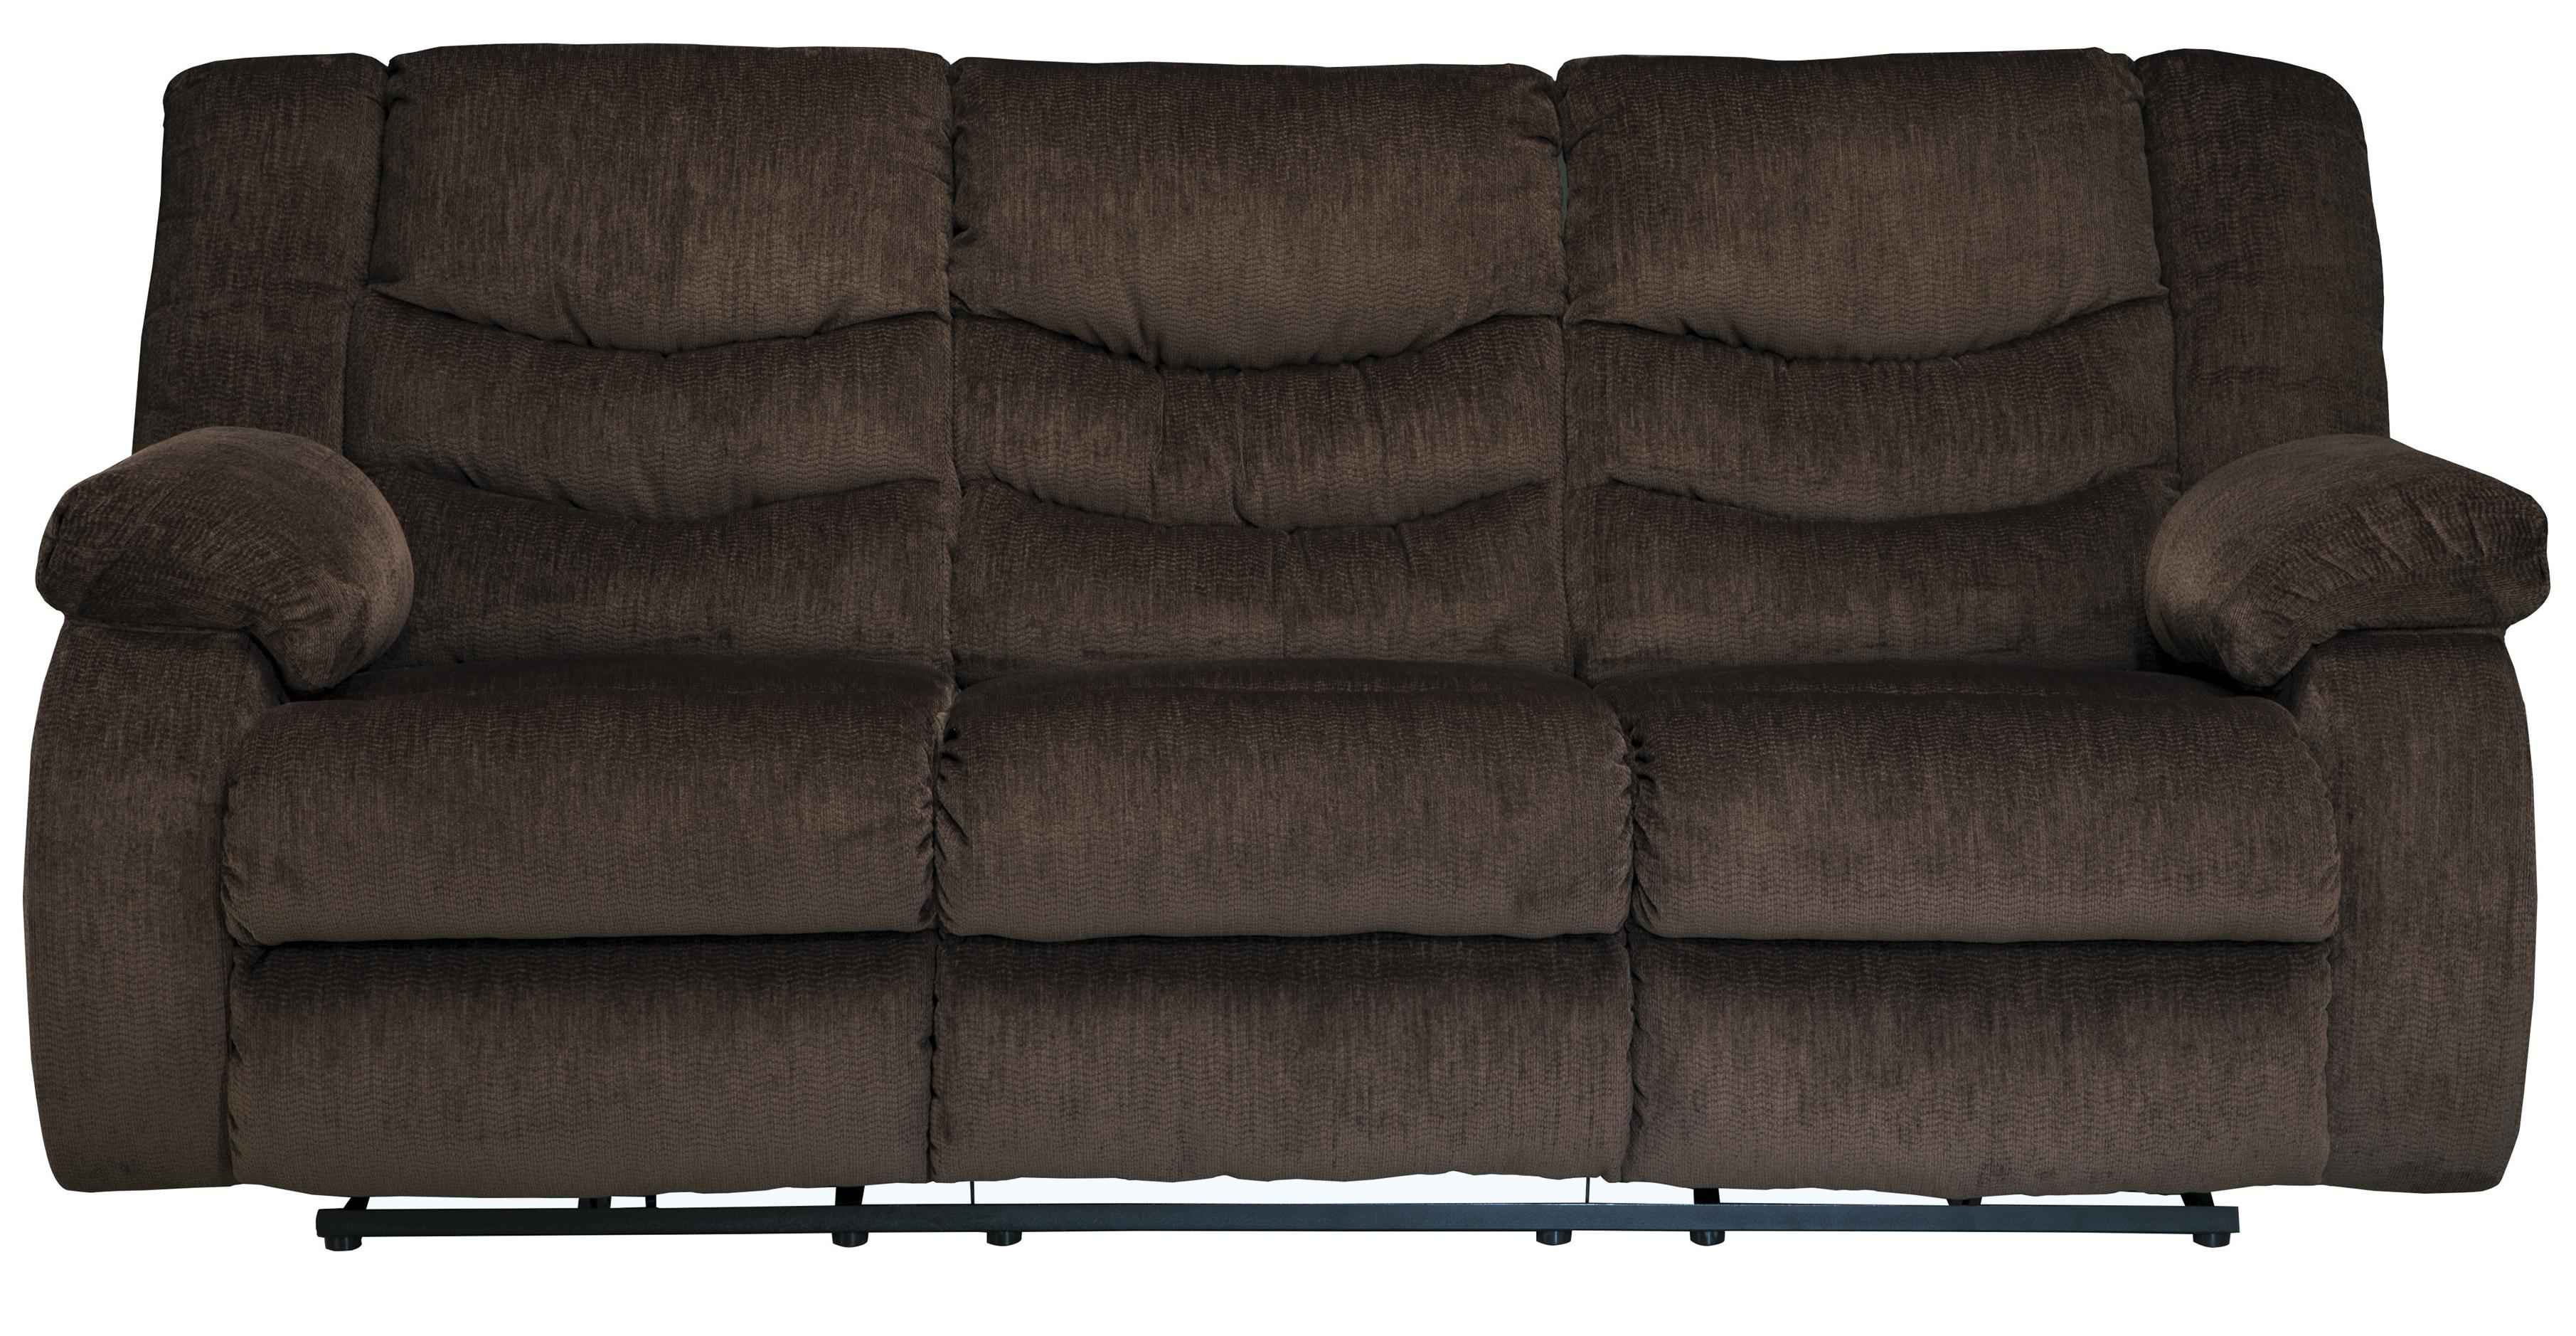 Signature Design by Ashley Garek - Cocoa Reclining Sofa - Item Number: 9200388